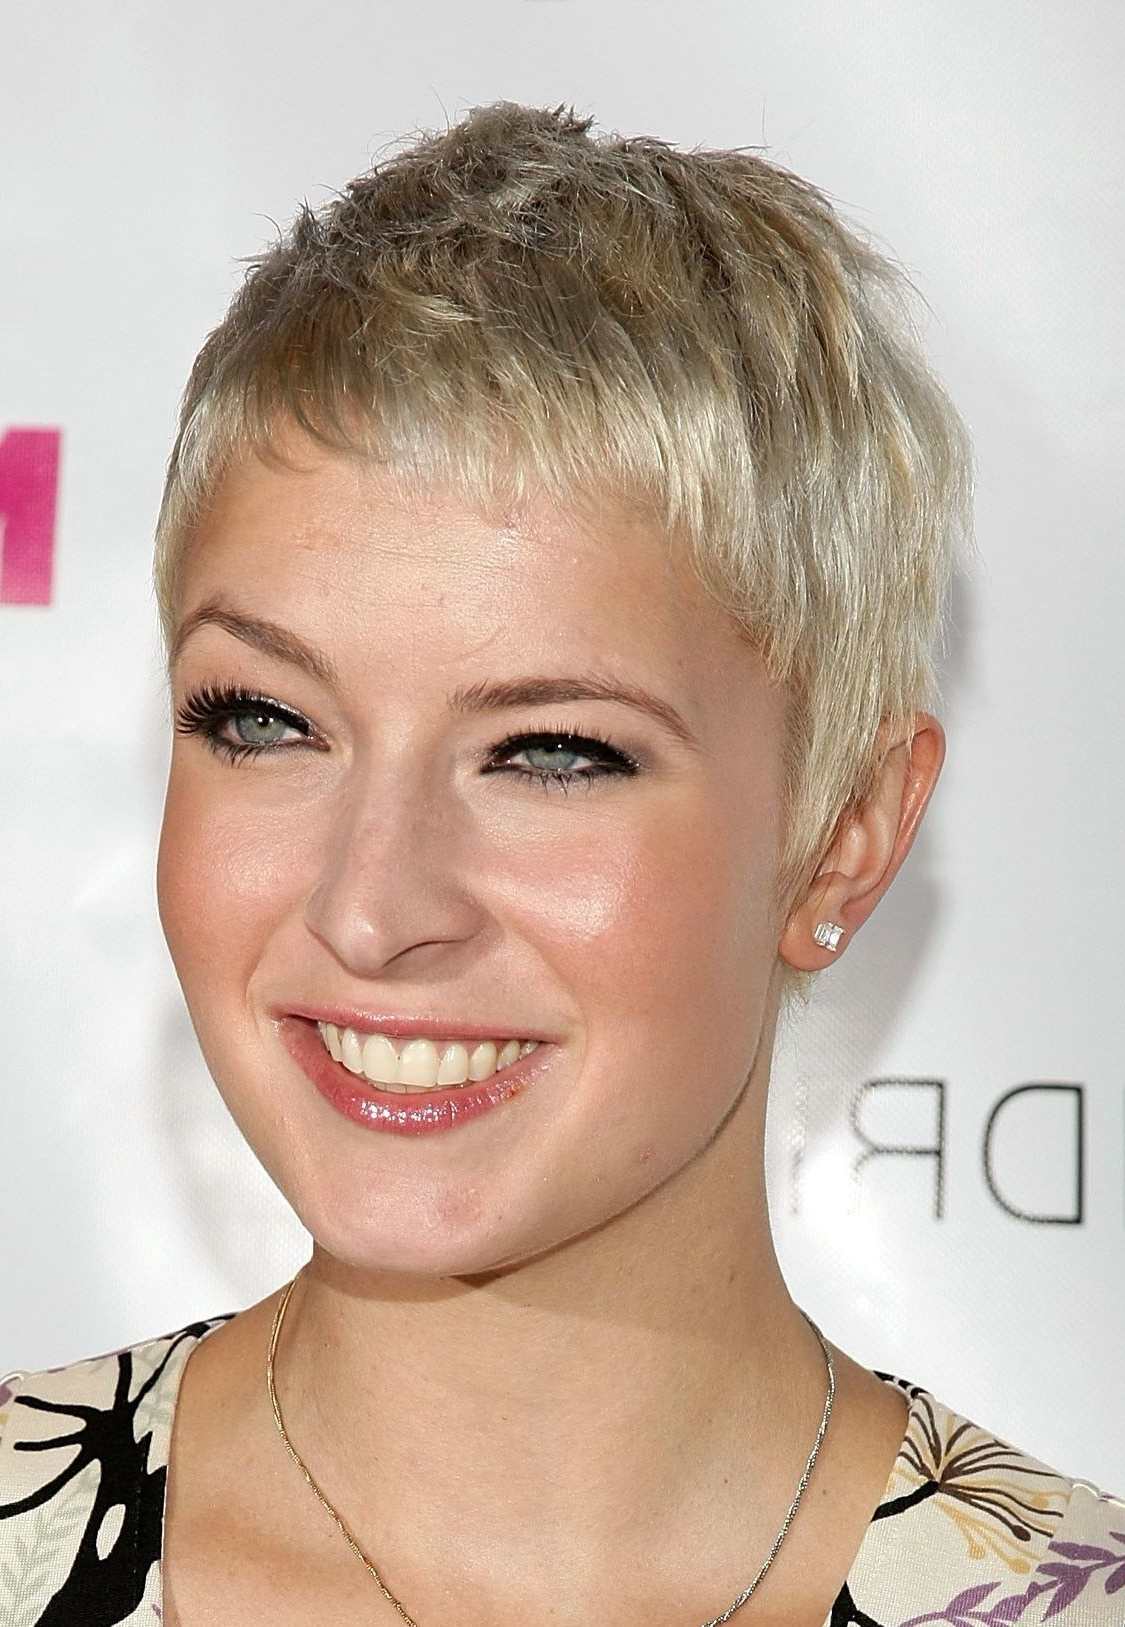 Short Hairstyles For Ladies With Square Faces Inspirational The Best Intended For Short Haircuts For Square Face (View 16 of 25)